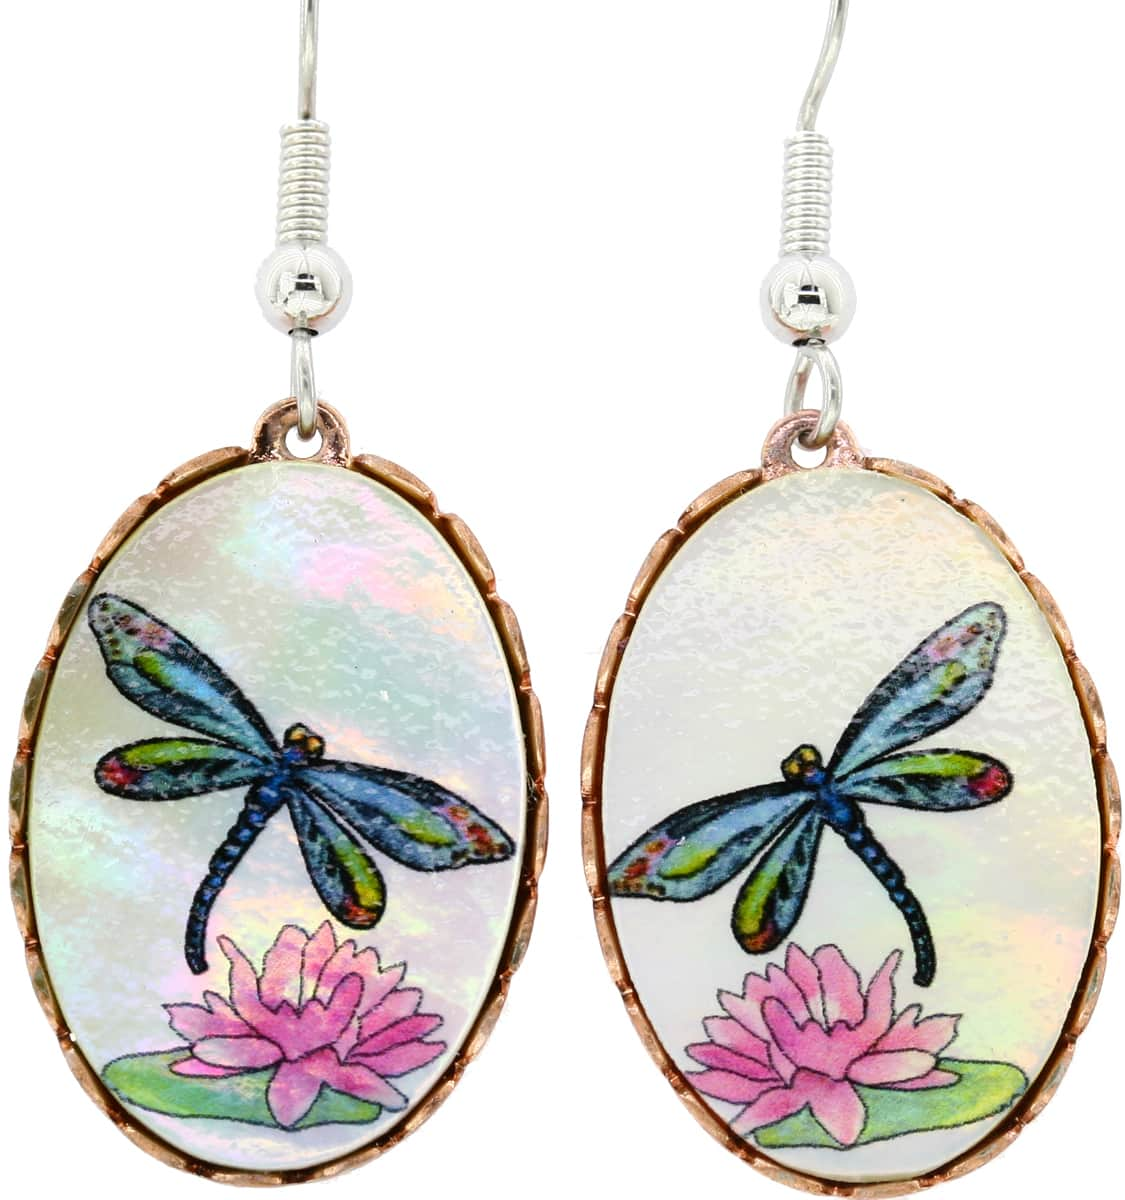 Dragonfly Earrings Made from Shells